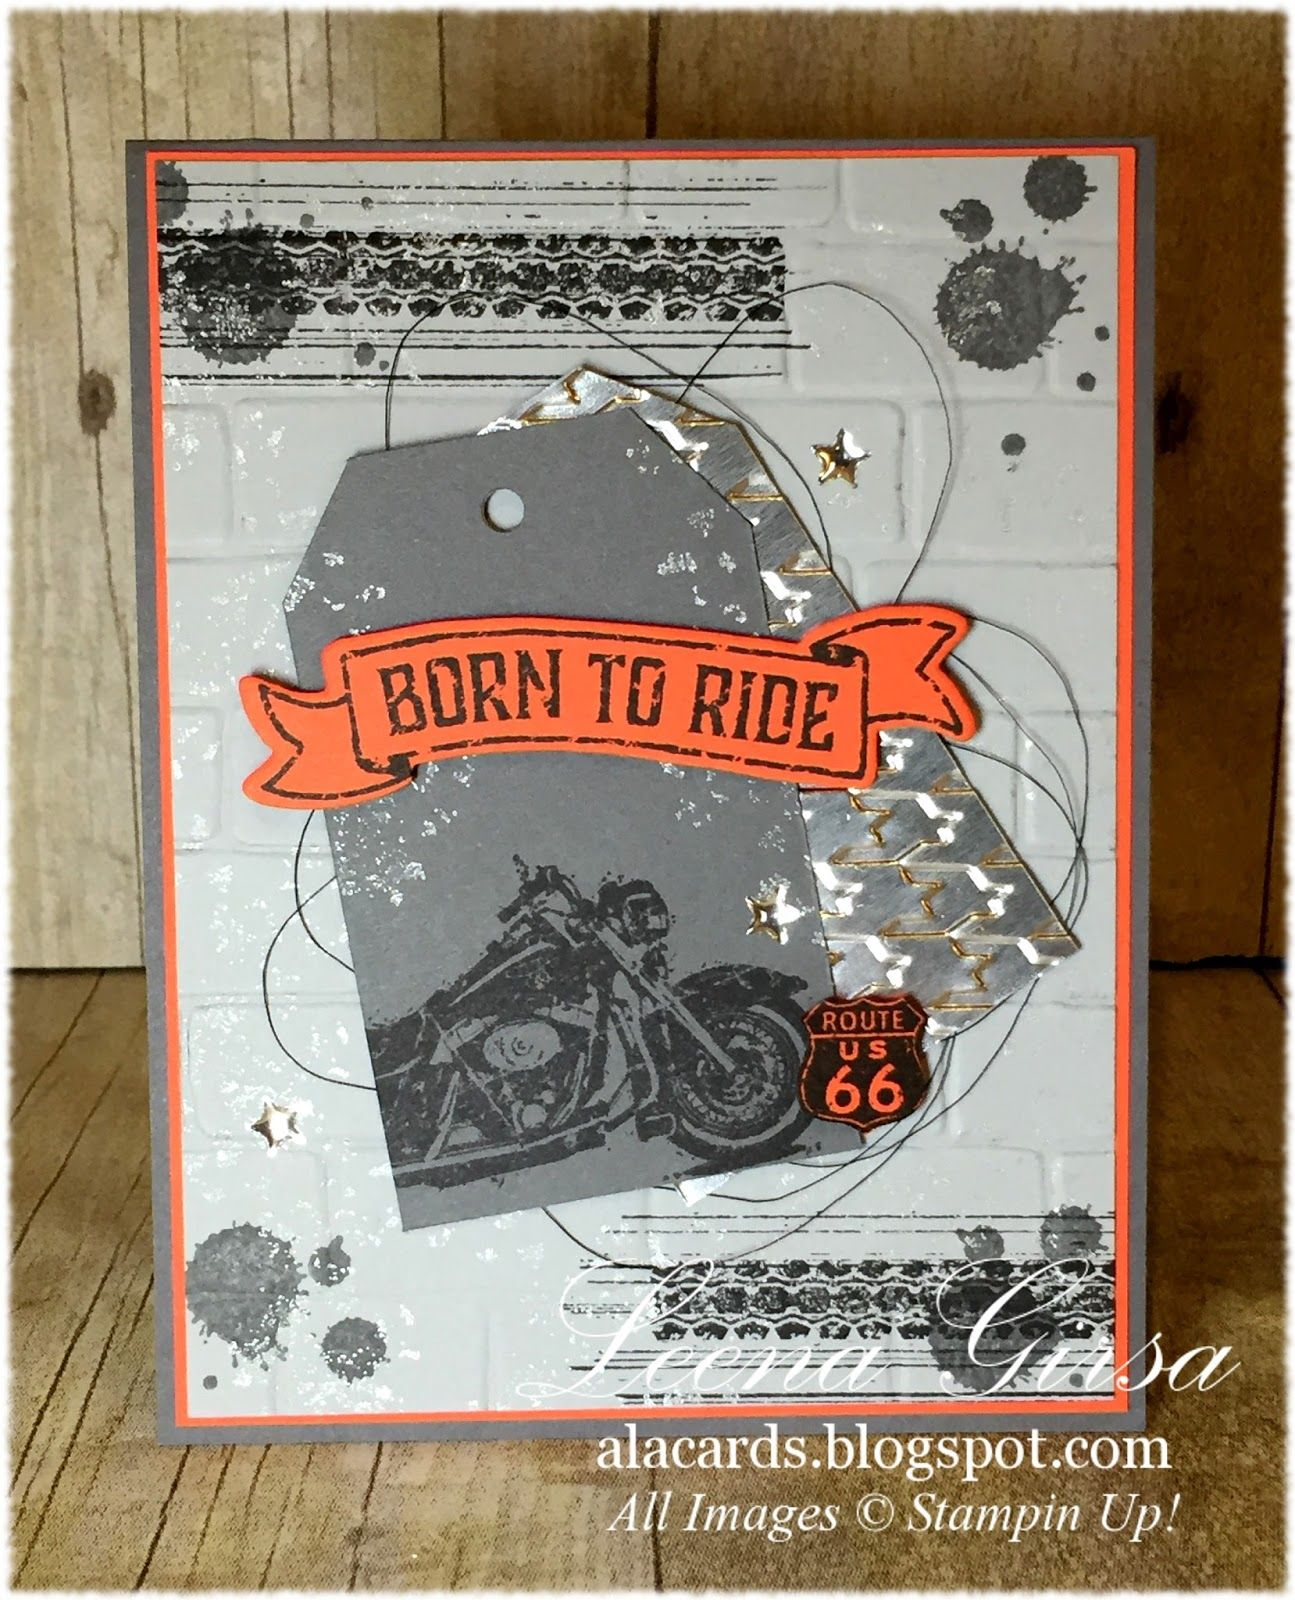 A La Cards: Born to Ride